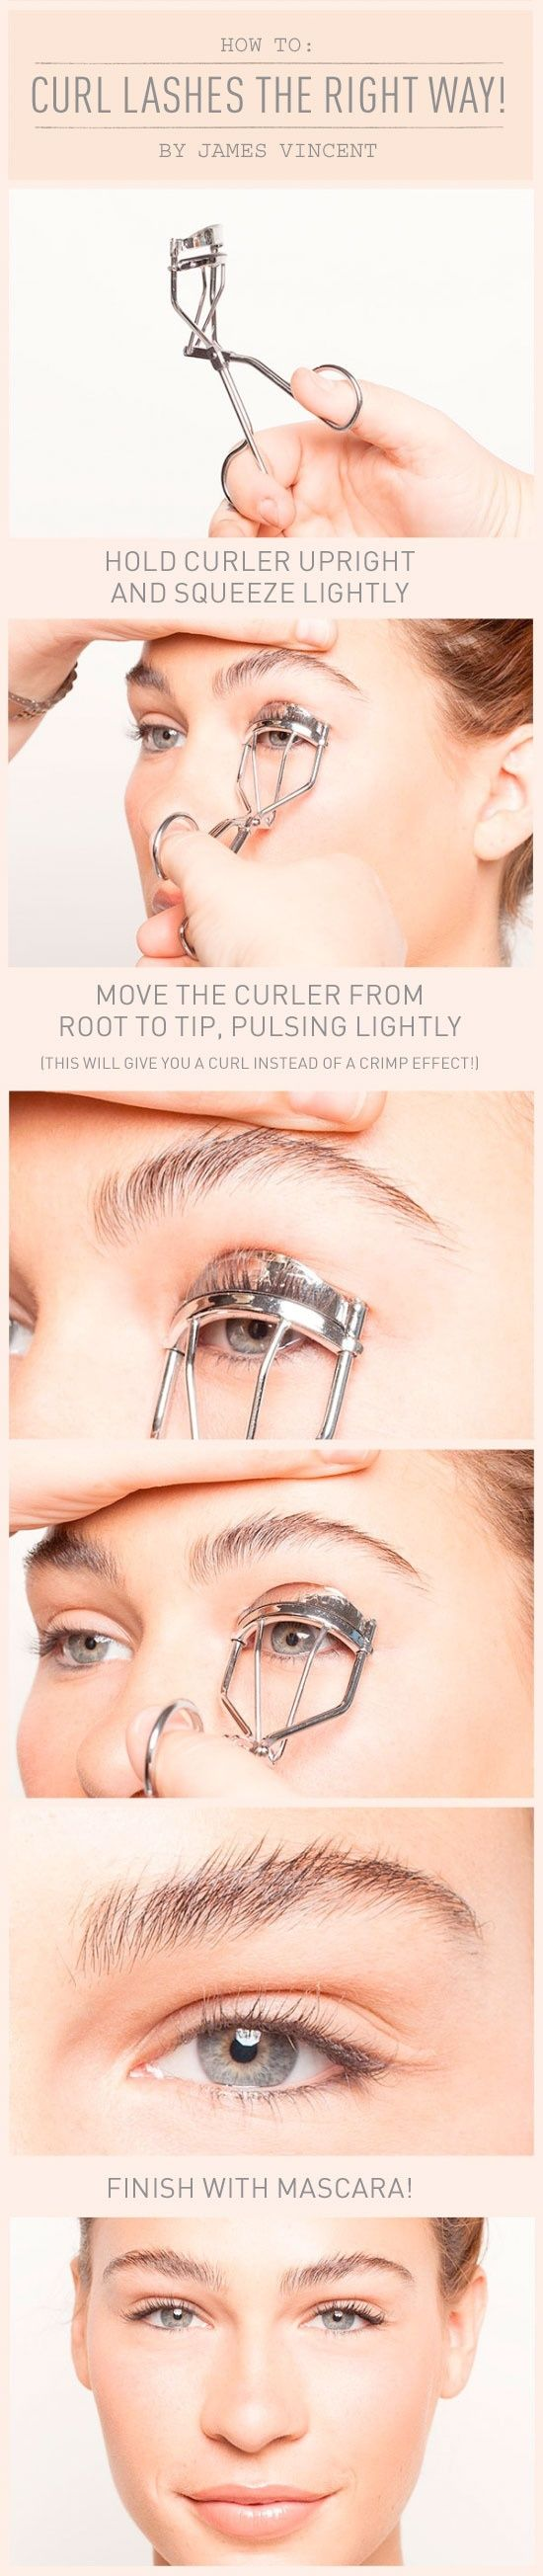 How To Curl Lashes (the Right Way)